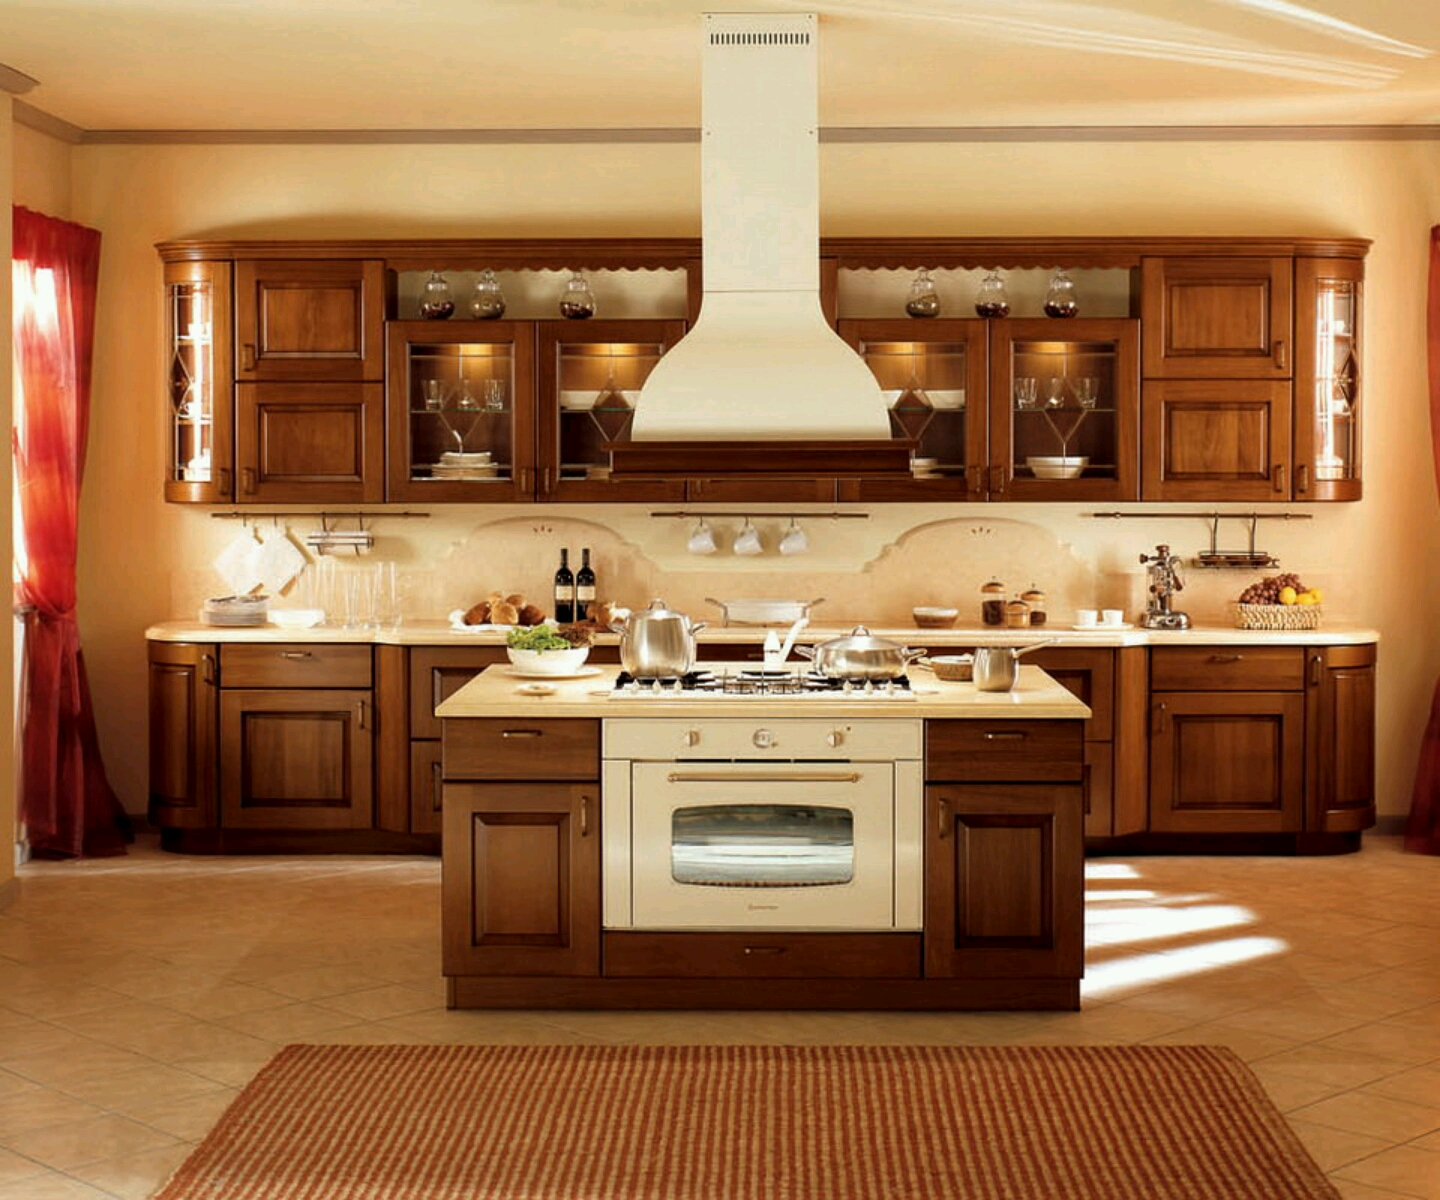 New home designs latest modern kitchen cabinets designs for Kitchen design cabinets